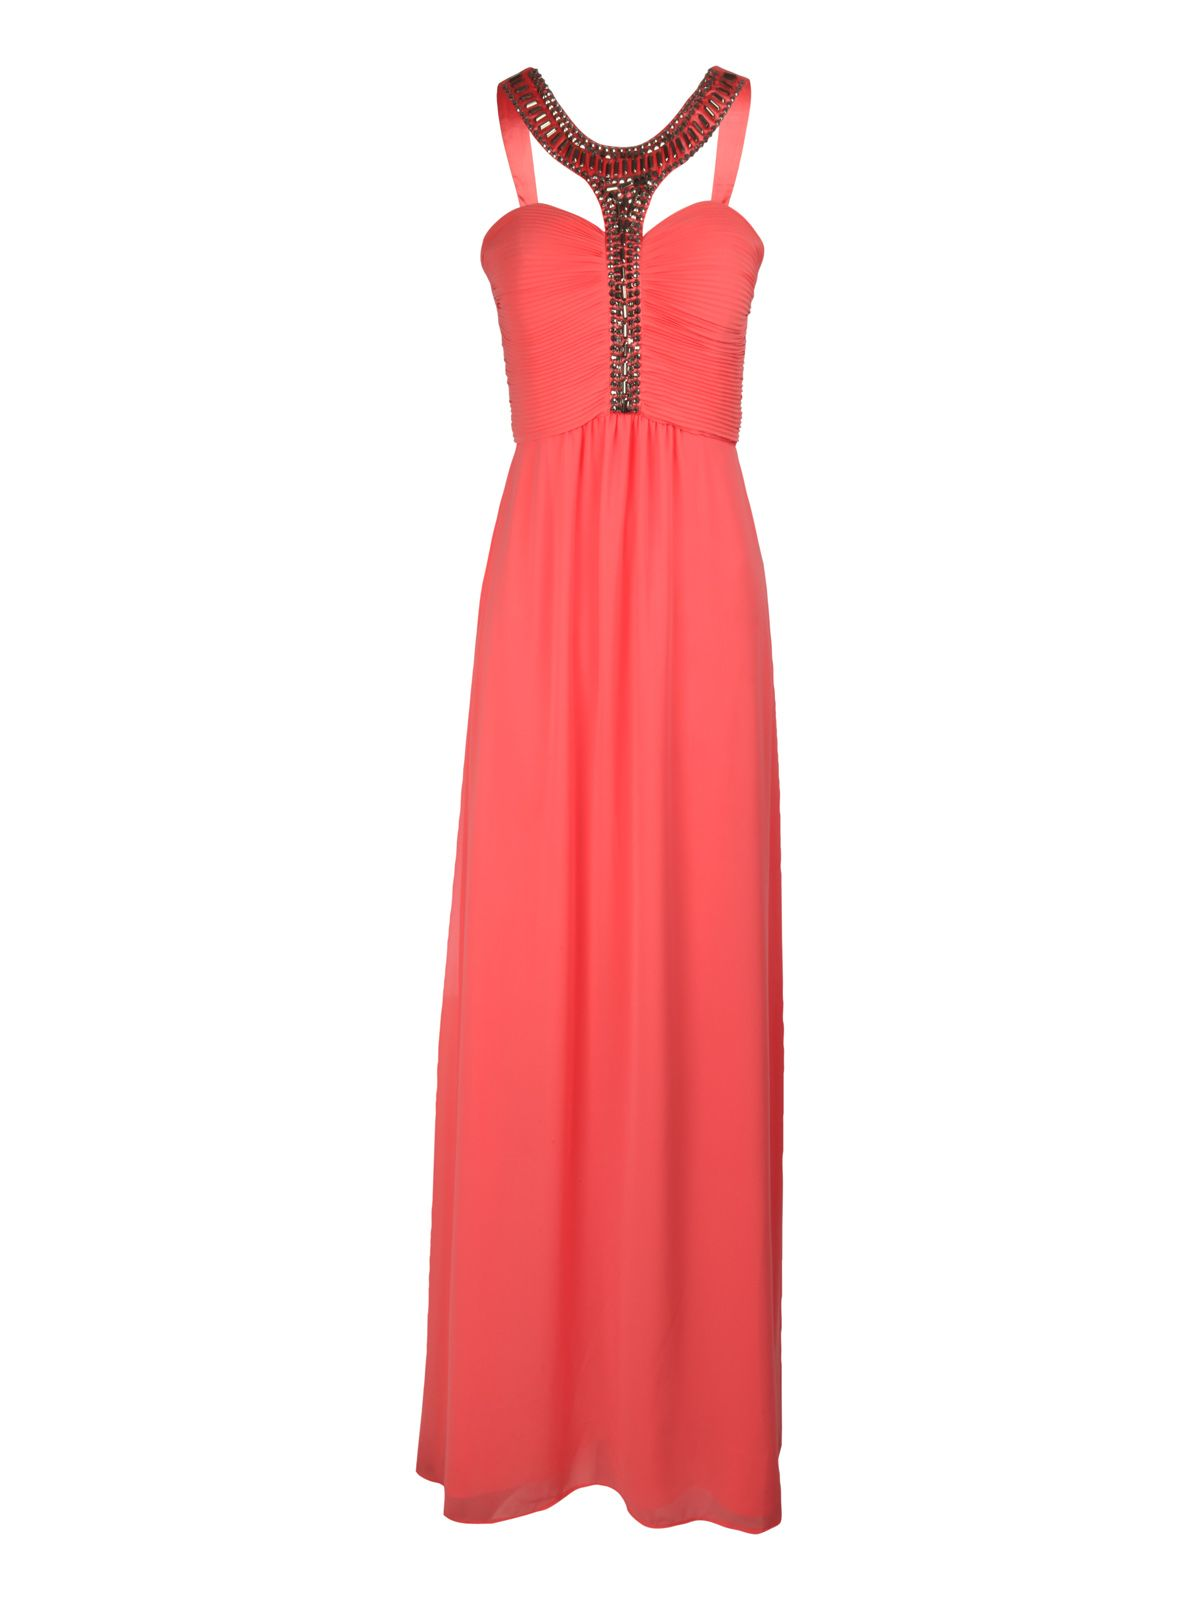 Embellished T-Bar Maxi Dress